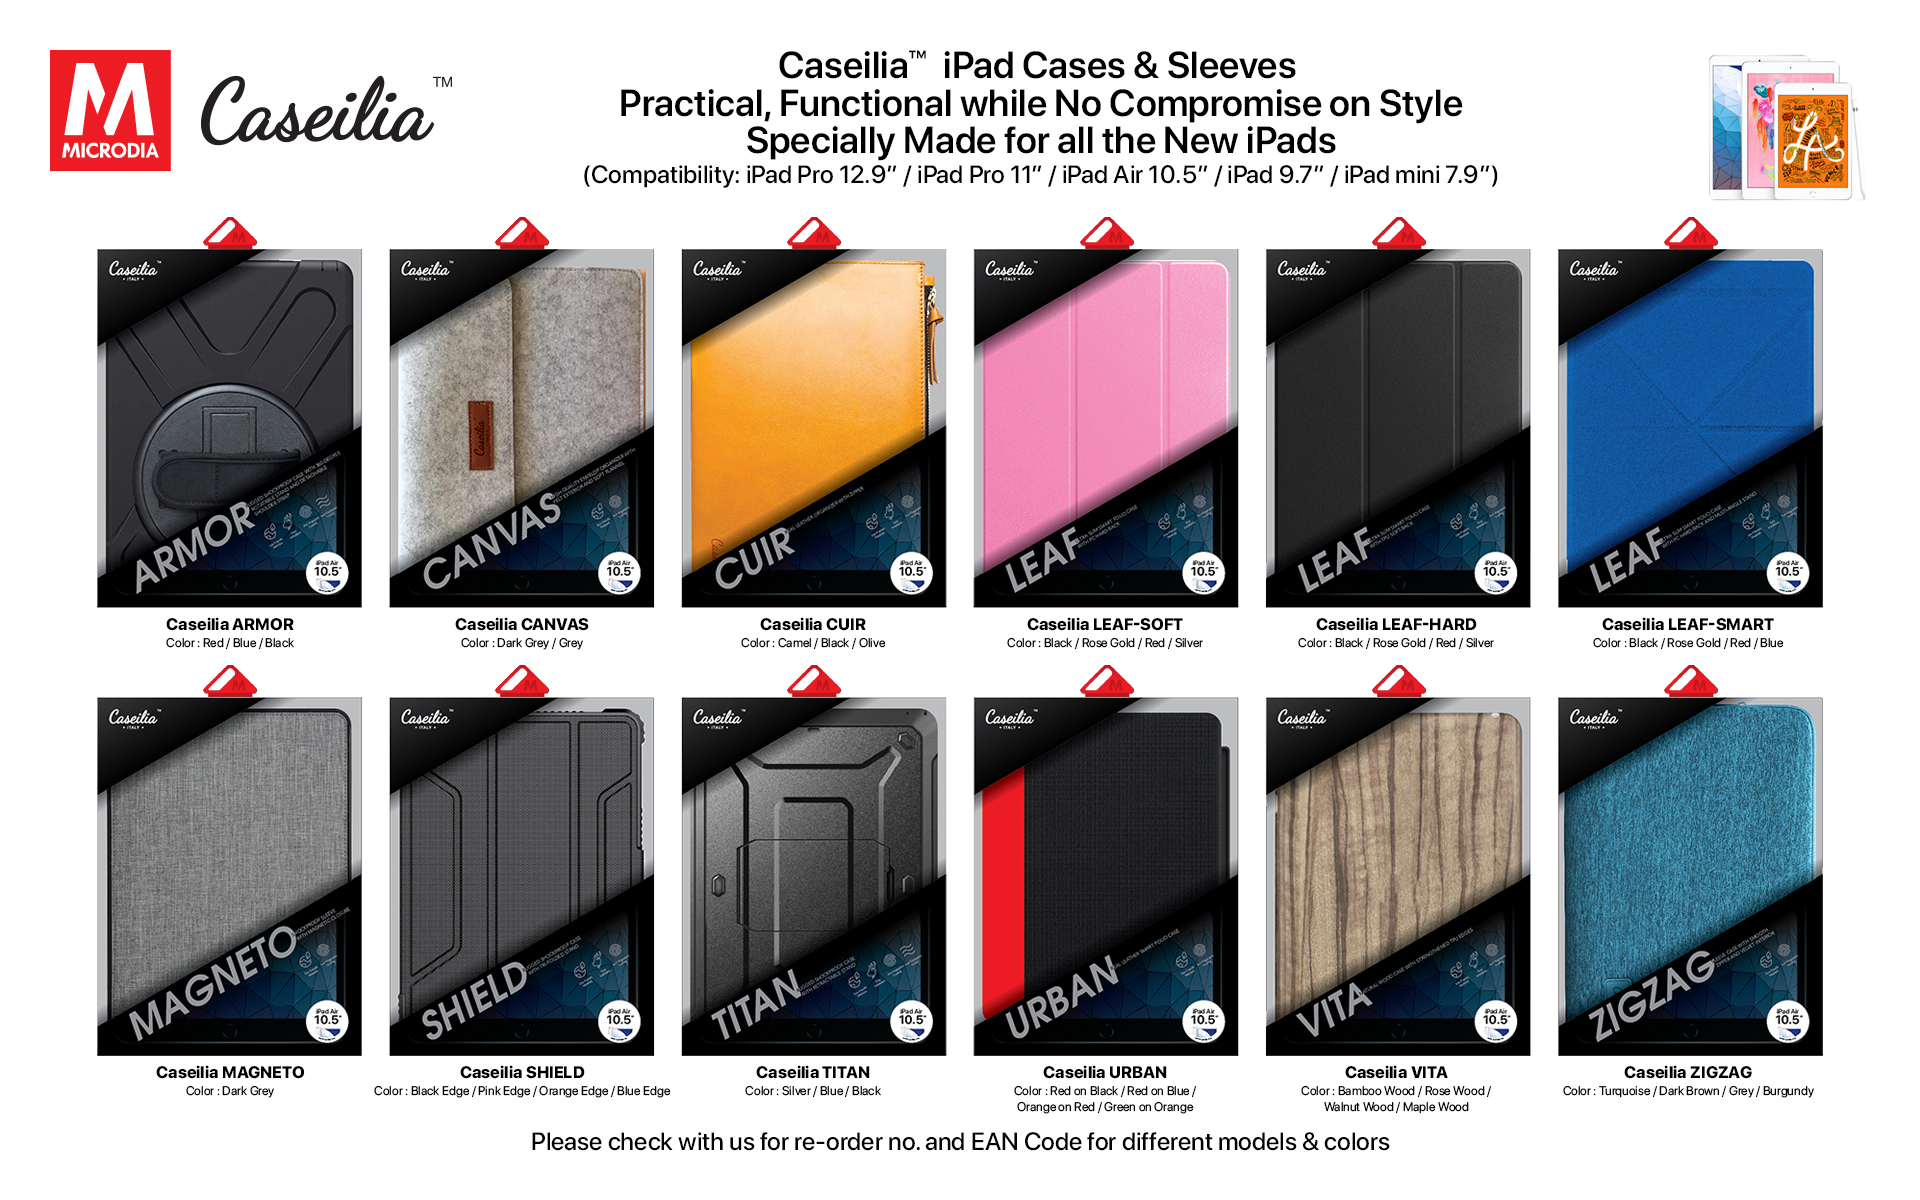 23.2 Caseilia-iPad Case